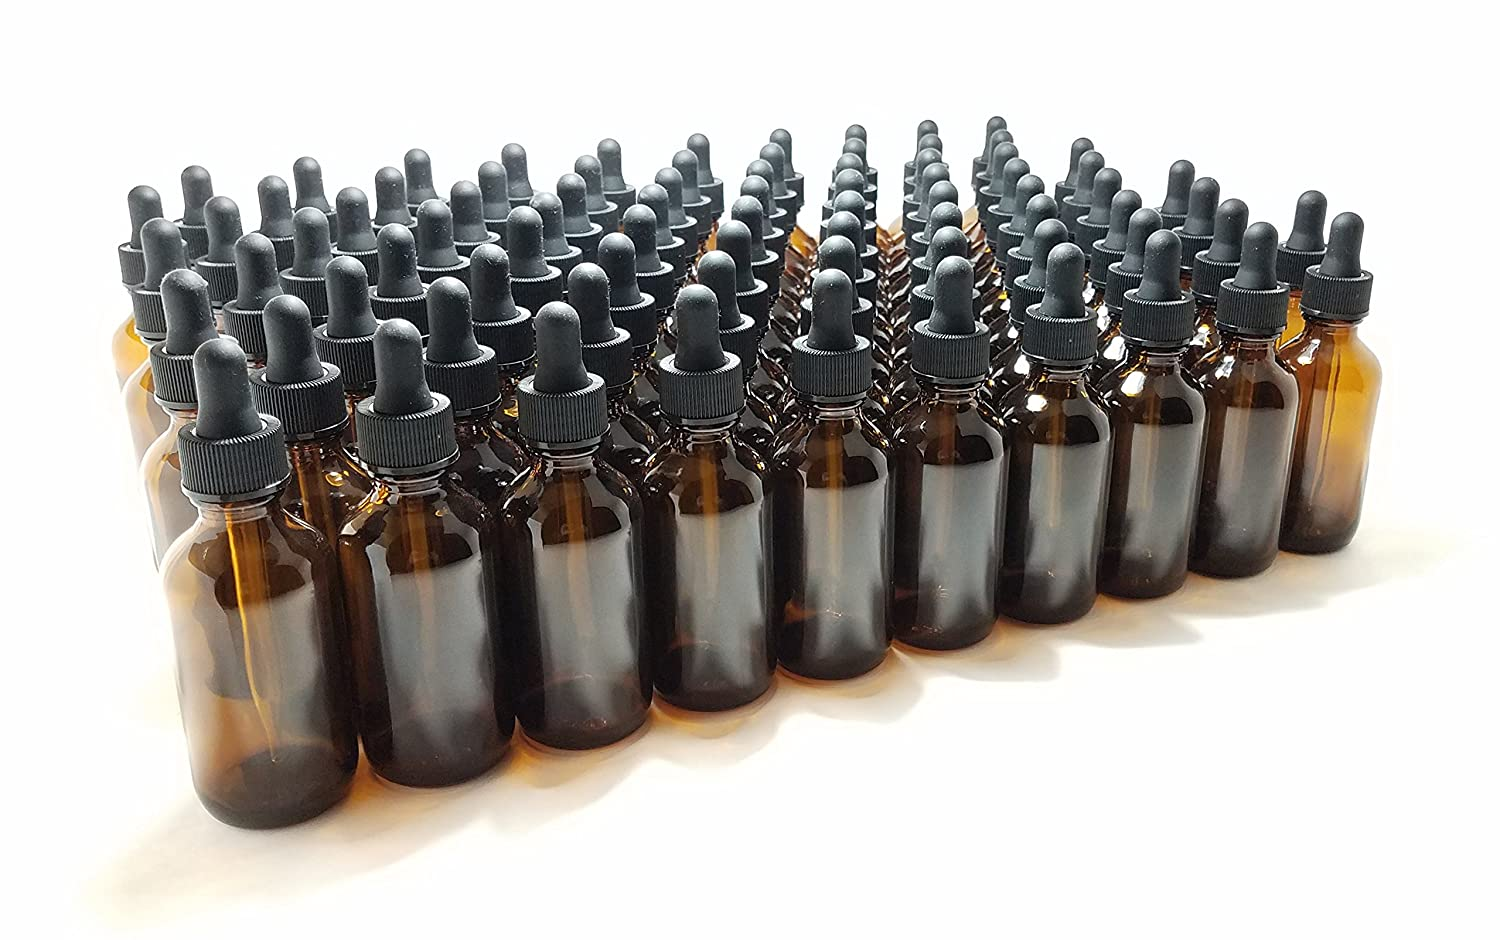 J E Supplies 2oz Amber Glass Dropper Bottles 60mL with Tapered Glass Droppers For Essential Oils – Pack of 80 – Wholesale – Bulk